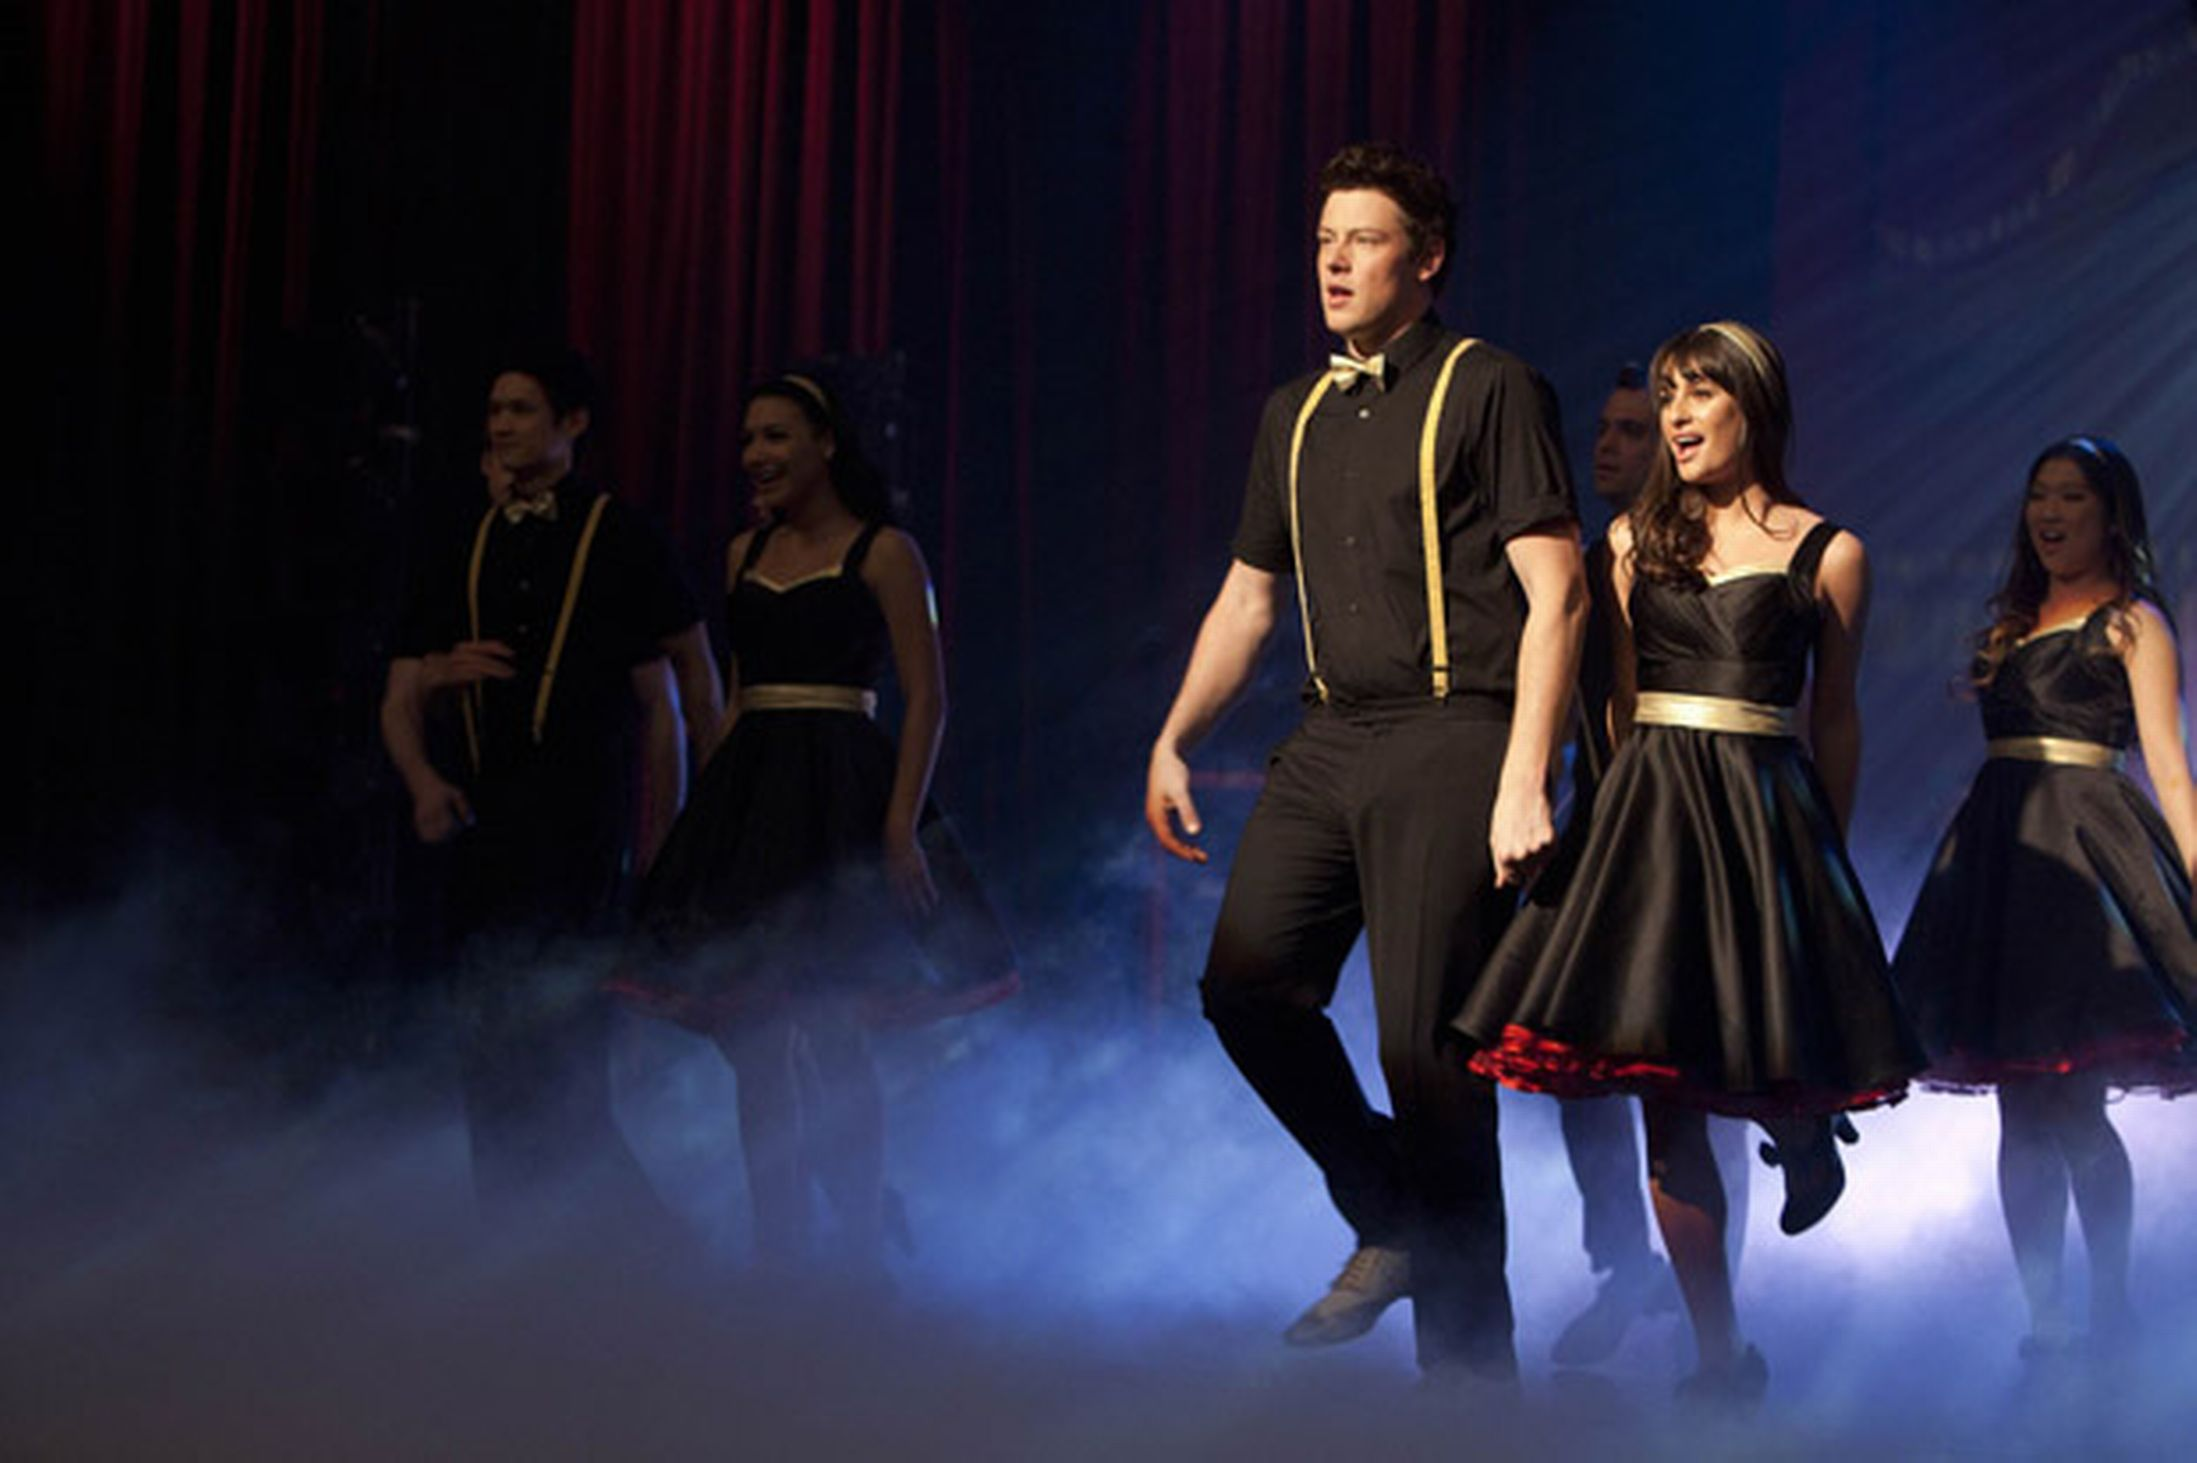 Glee On My Way Lea Michele as Rachel and Cory Monteith